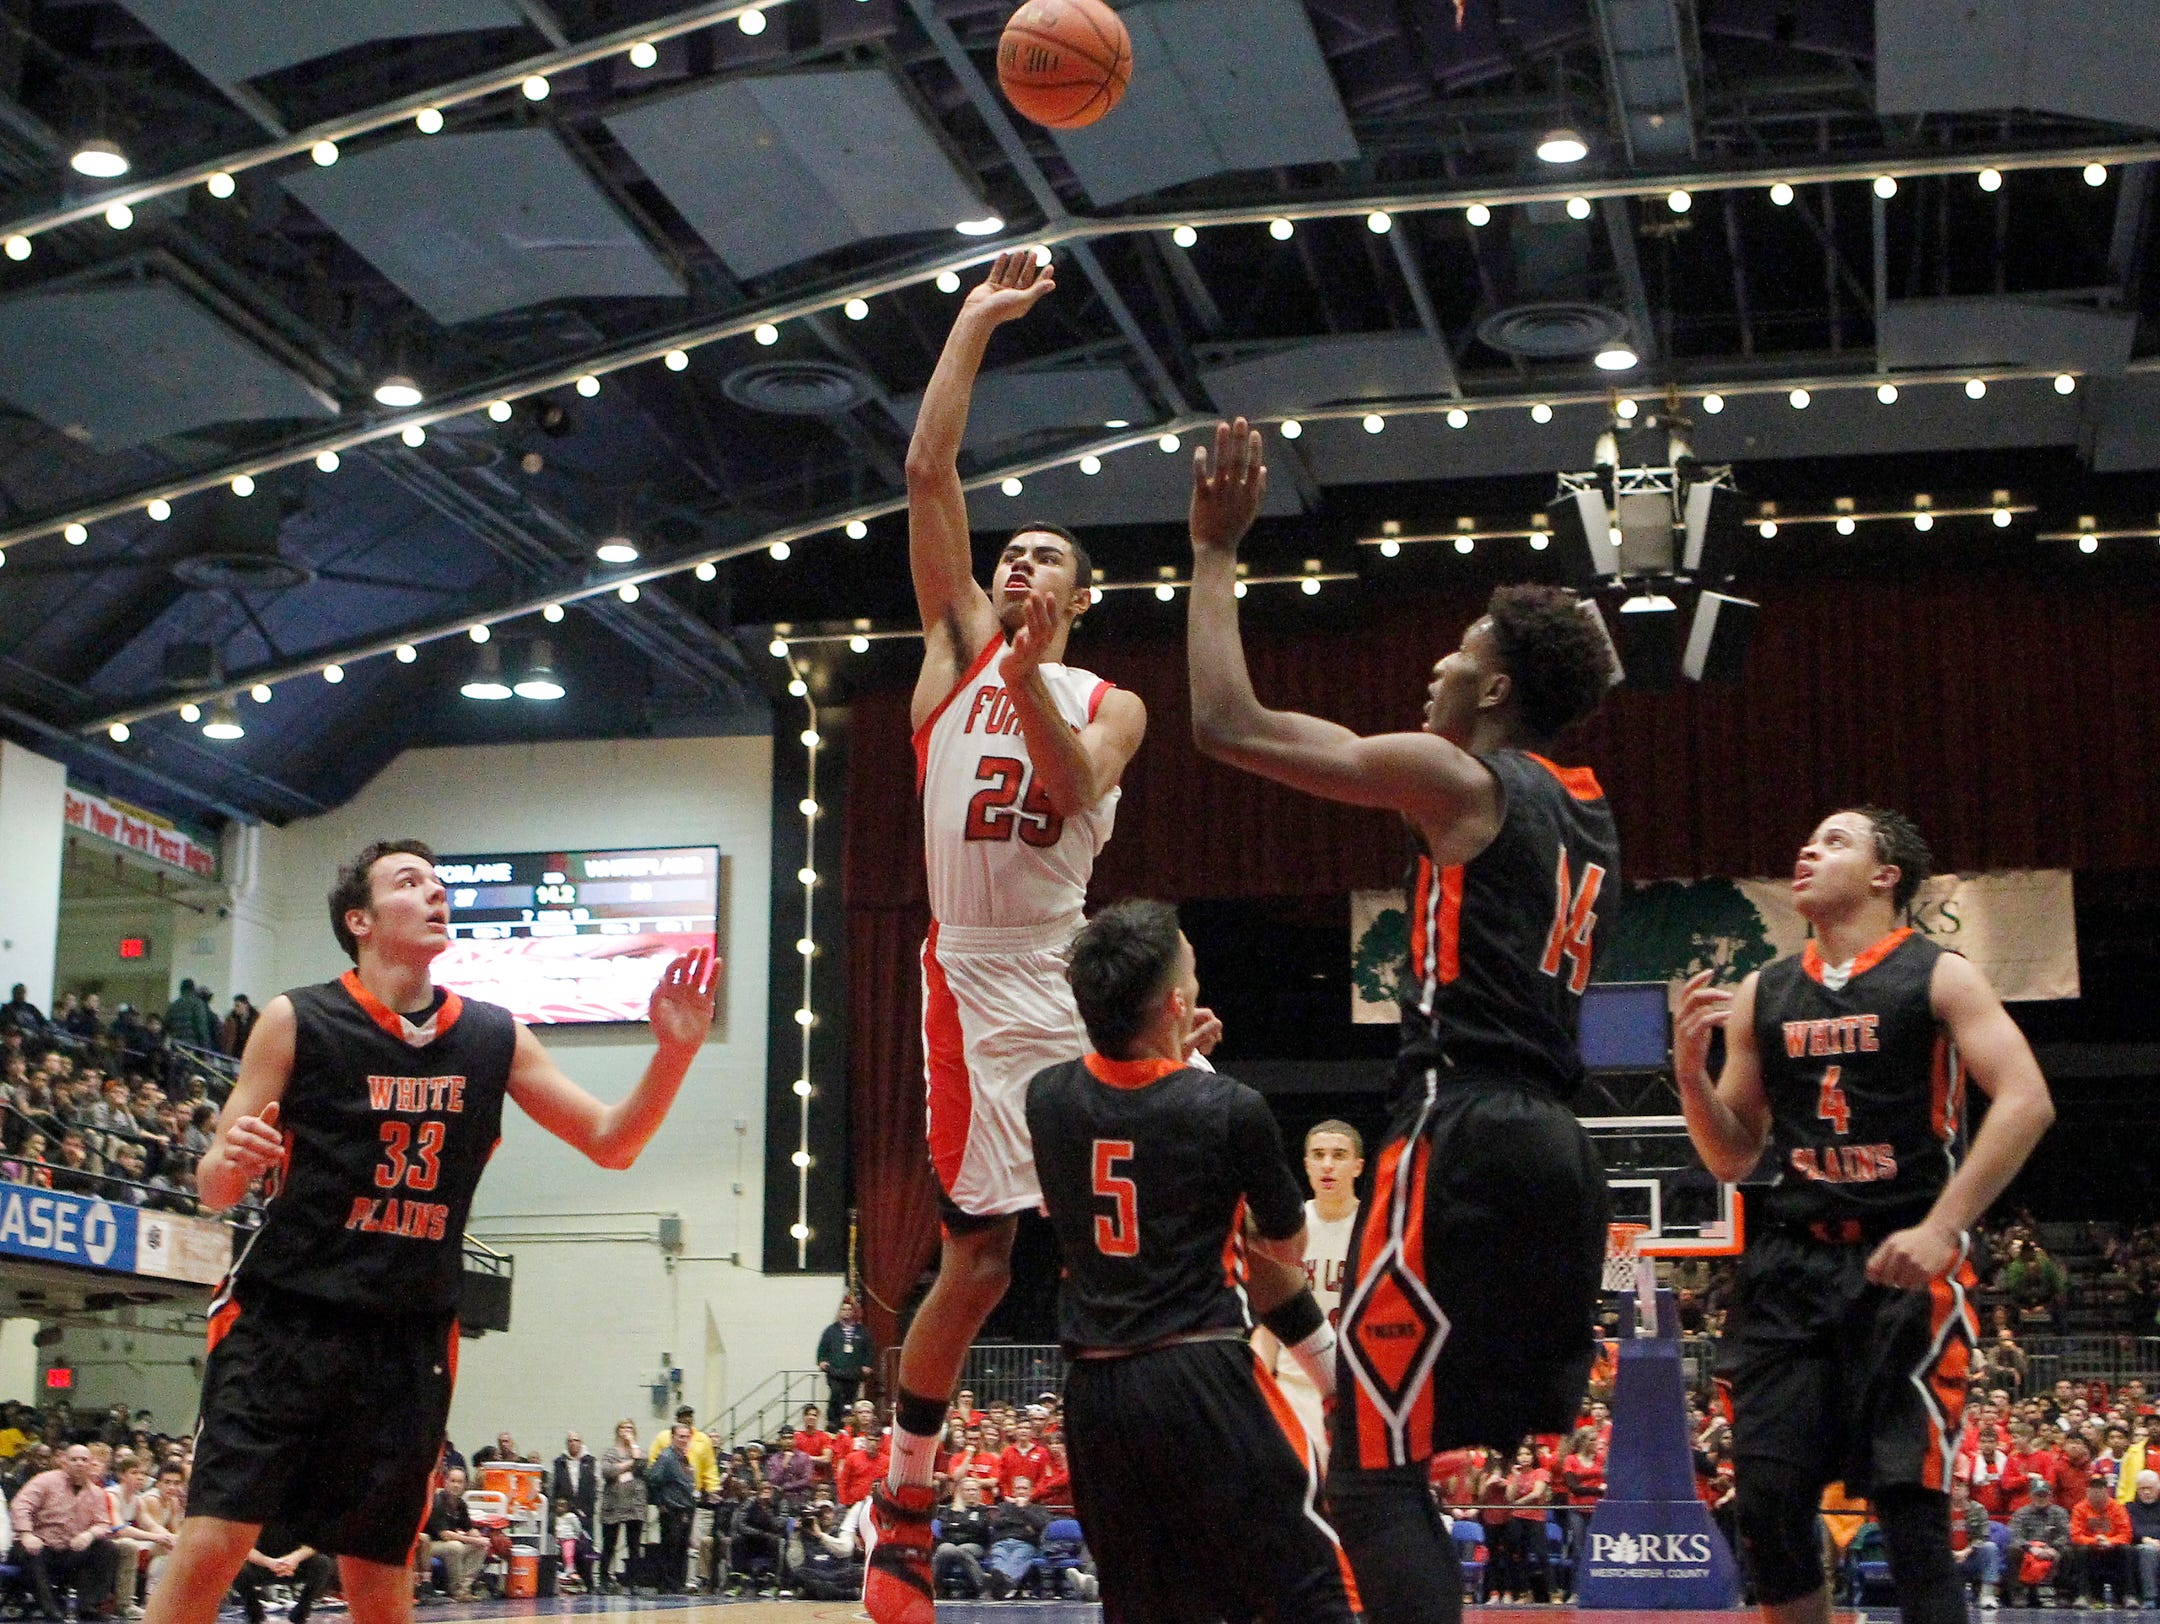 Fox Lane's Alex Olsen (25) drives past White Plains' Luis Cartagens (5) during the boys Class AA semi-final basketball game at the County Center in White Plains on Friday, February 26, 2016.